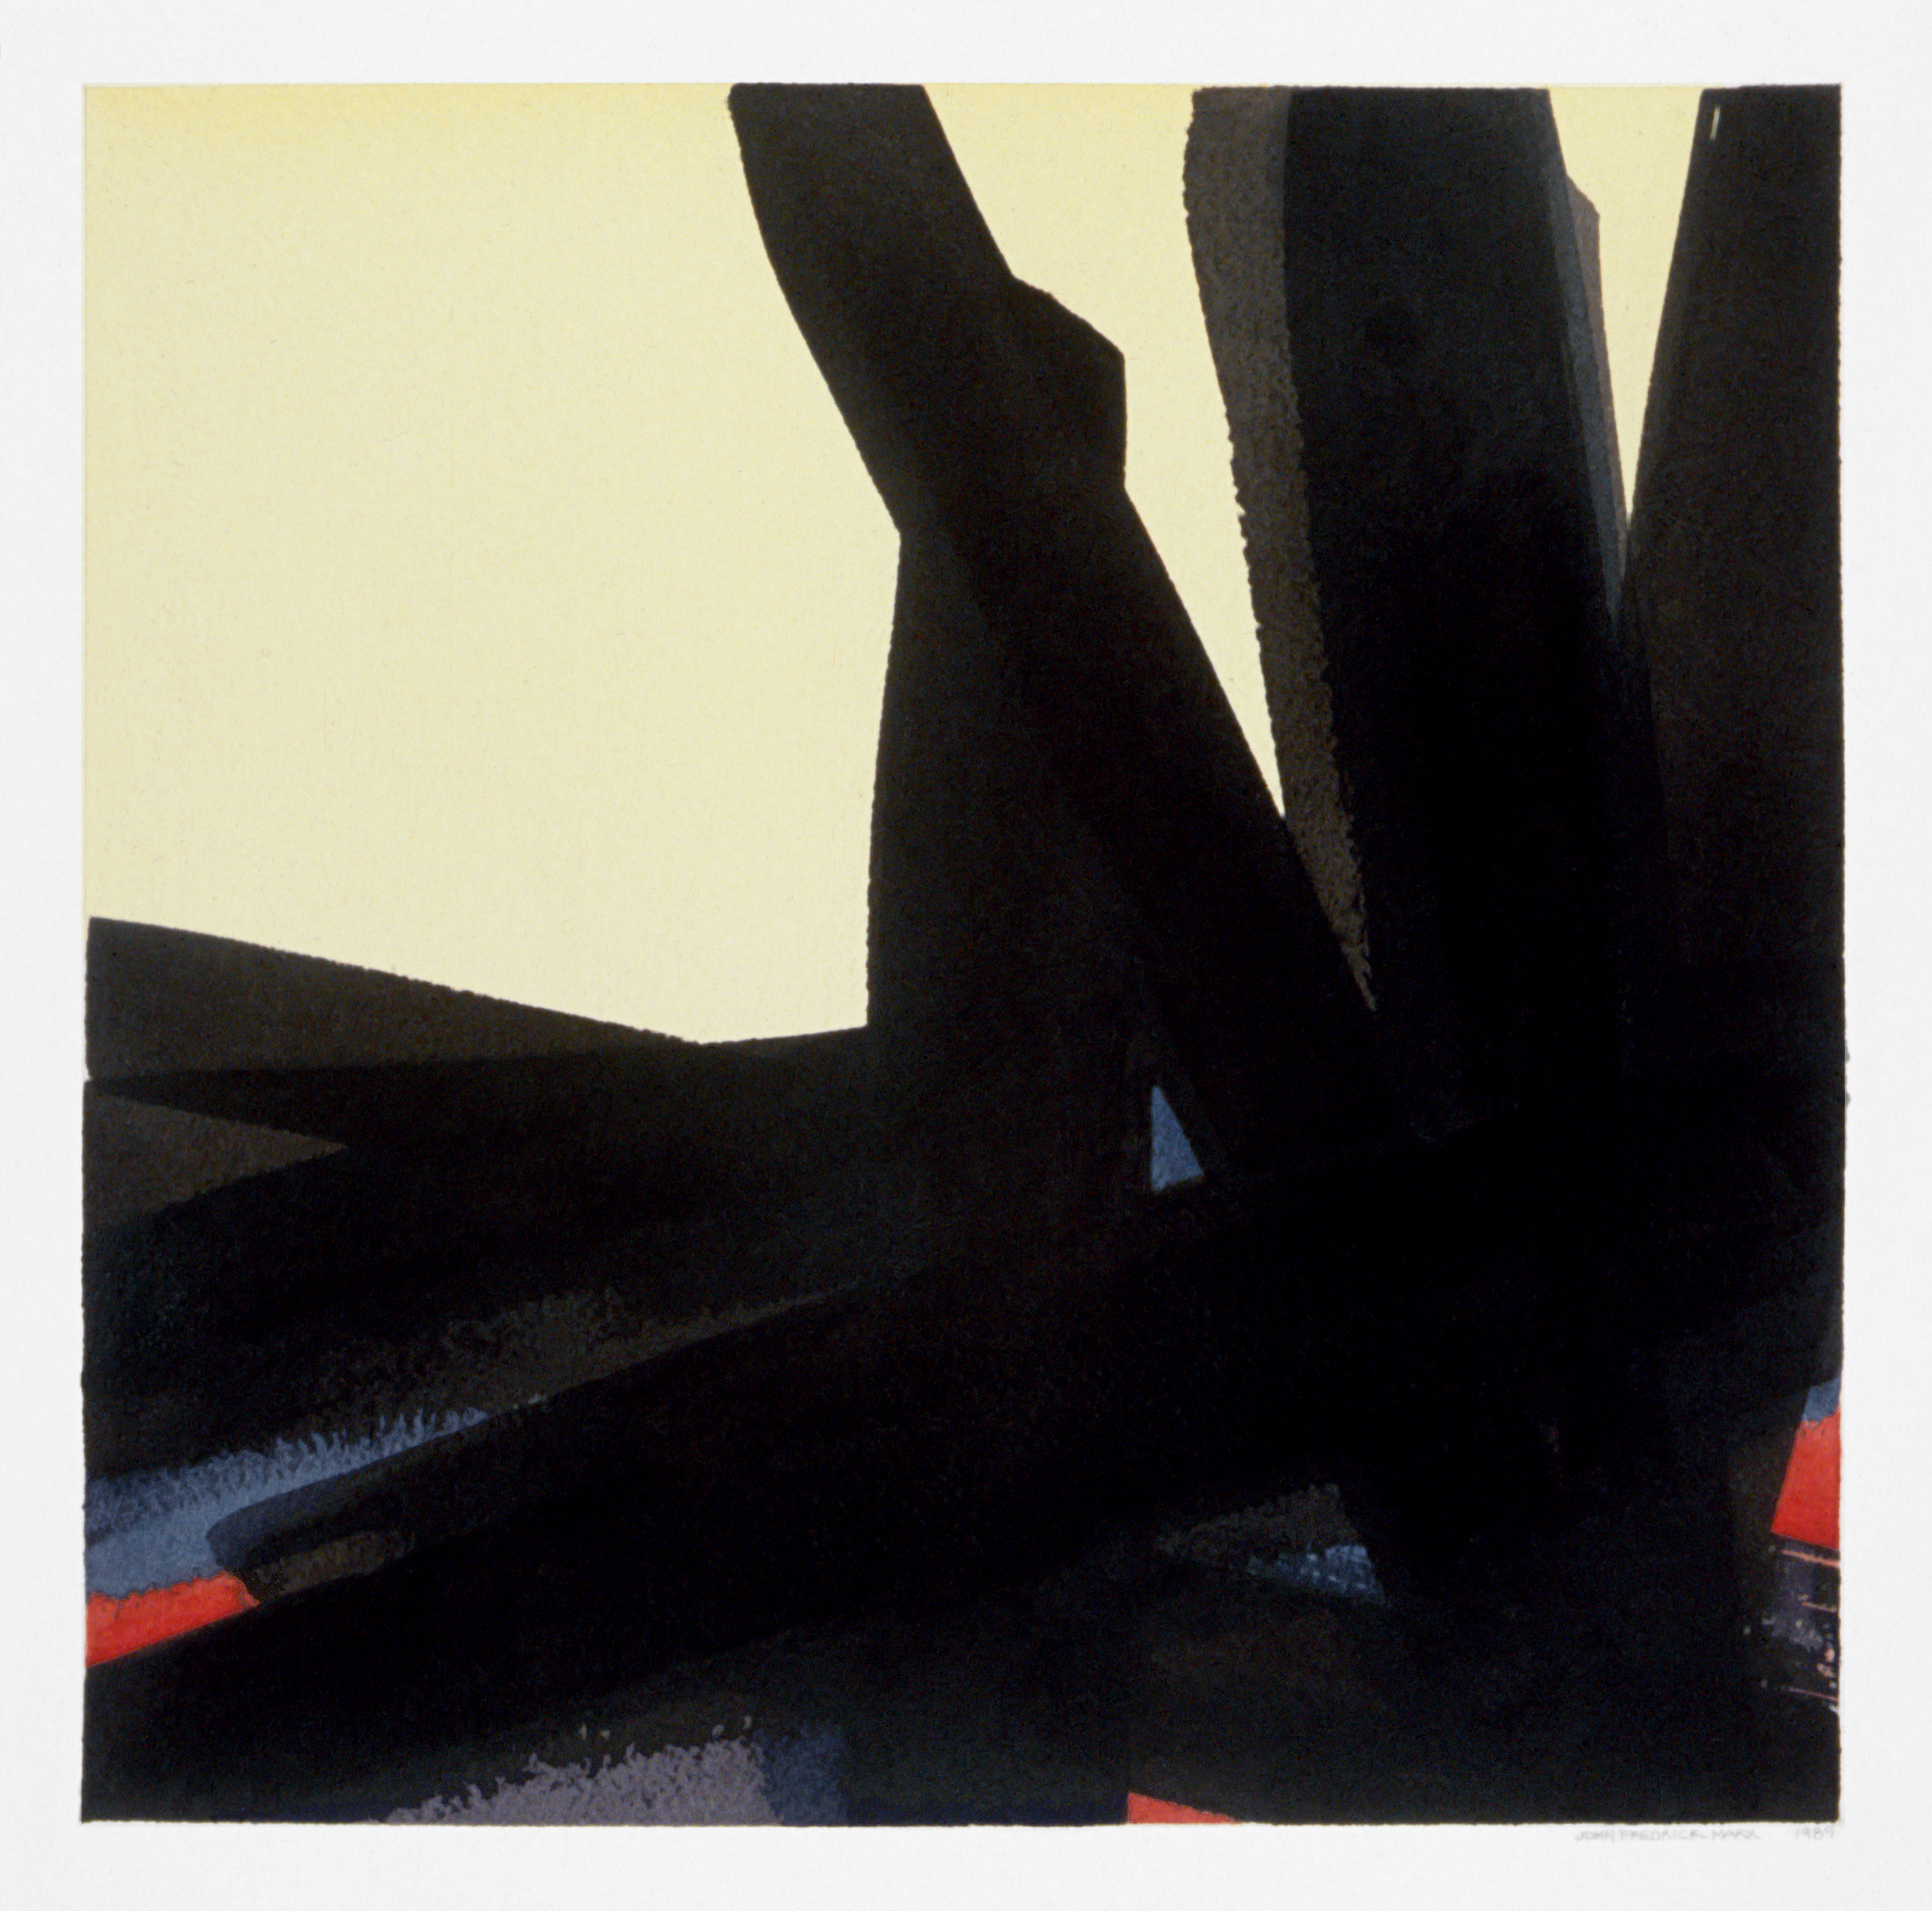 88 Abstraction in Black and Red, no.08 1989 10x10